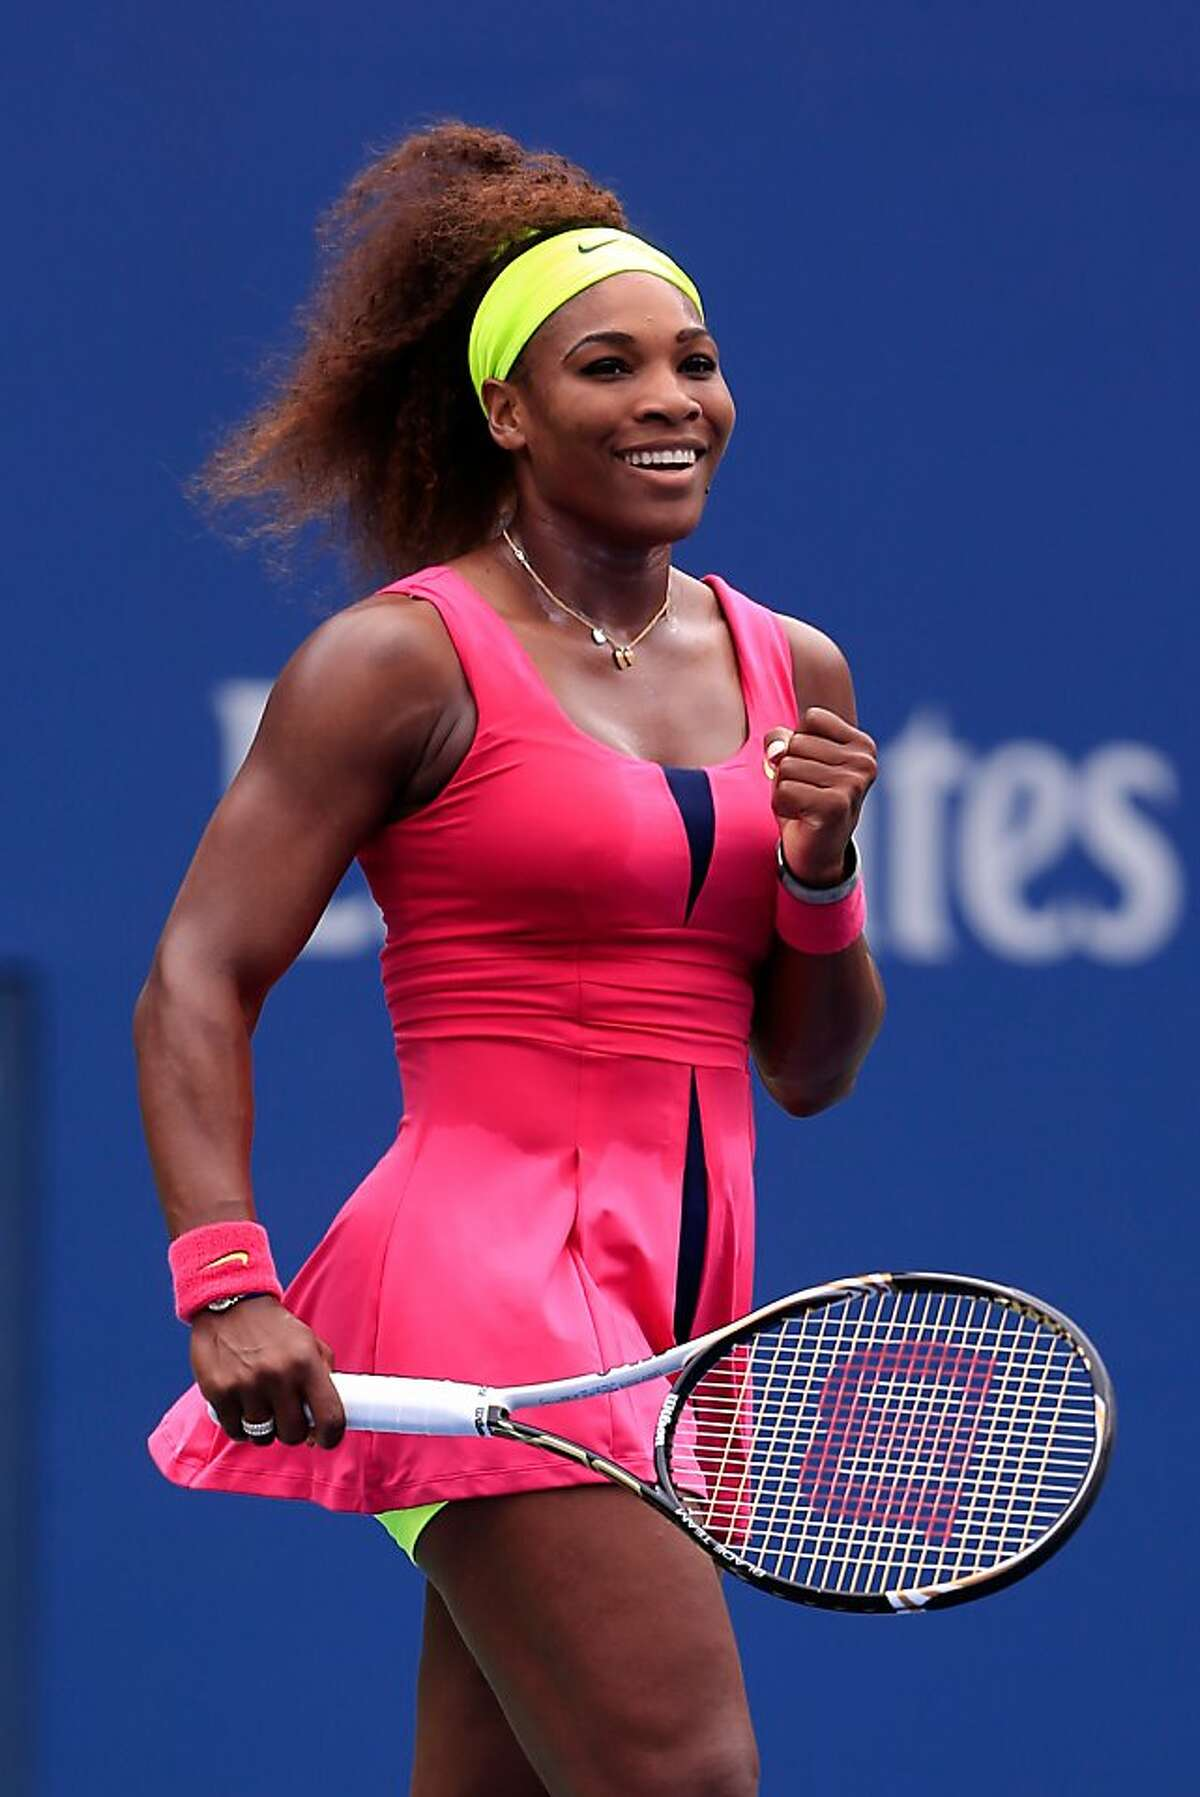 NEW YORK, NY - SEPTEMBER 03: Serena Williams of the United States reacts after defeating Andrea Hlavackova of Czech Republic during their women's singles fourth round match on Day Eight of the 2012 U.S. Open at the USTA Billie Jean King National Tennis Center on September 3, 2012 in the Flushing neighborhood, of the Queens borough of New York City. (Photo by Chris Trotman/Getty Images for USTA)